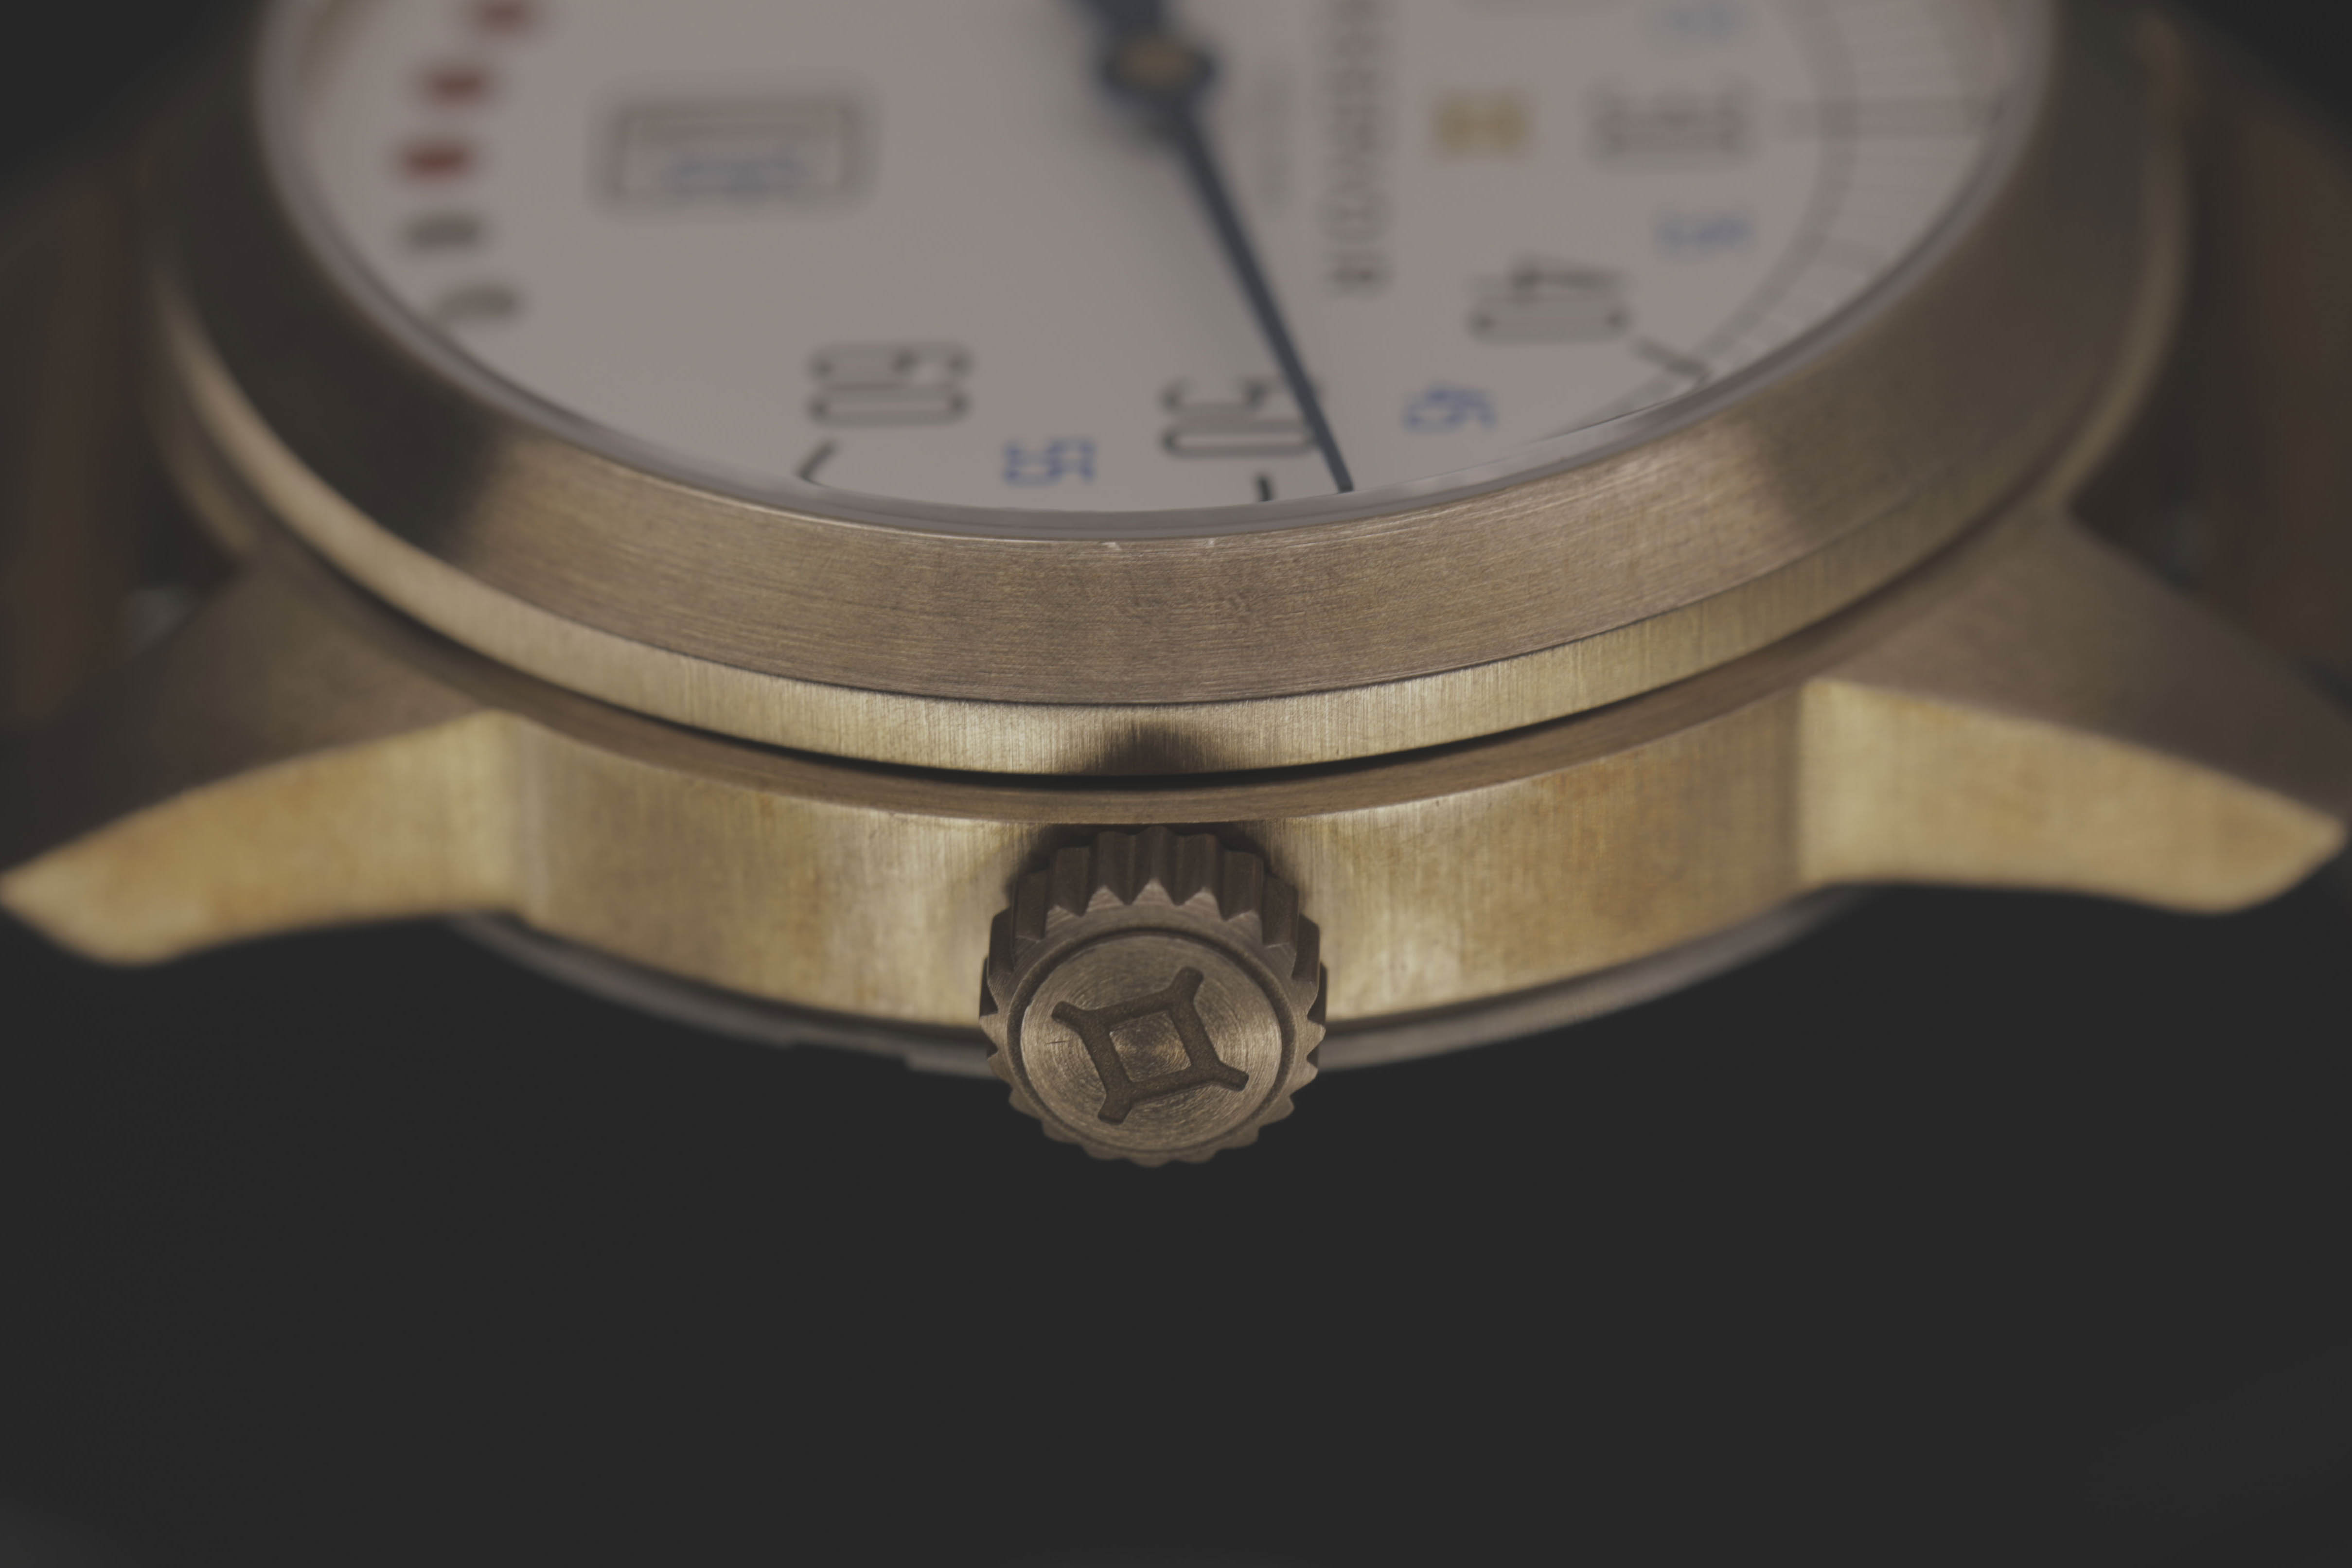 Combine a French flair for design with Swiss watchmaking internals and a unique display based on a customized module, and you get the ingredients for a successful watch brand.